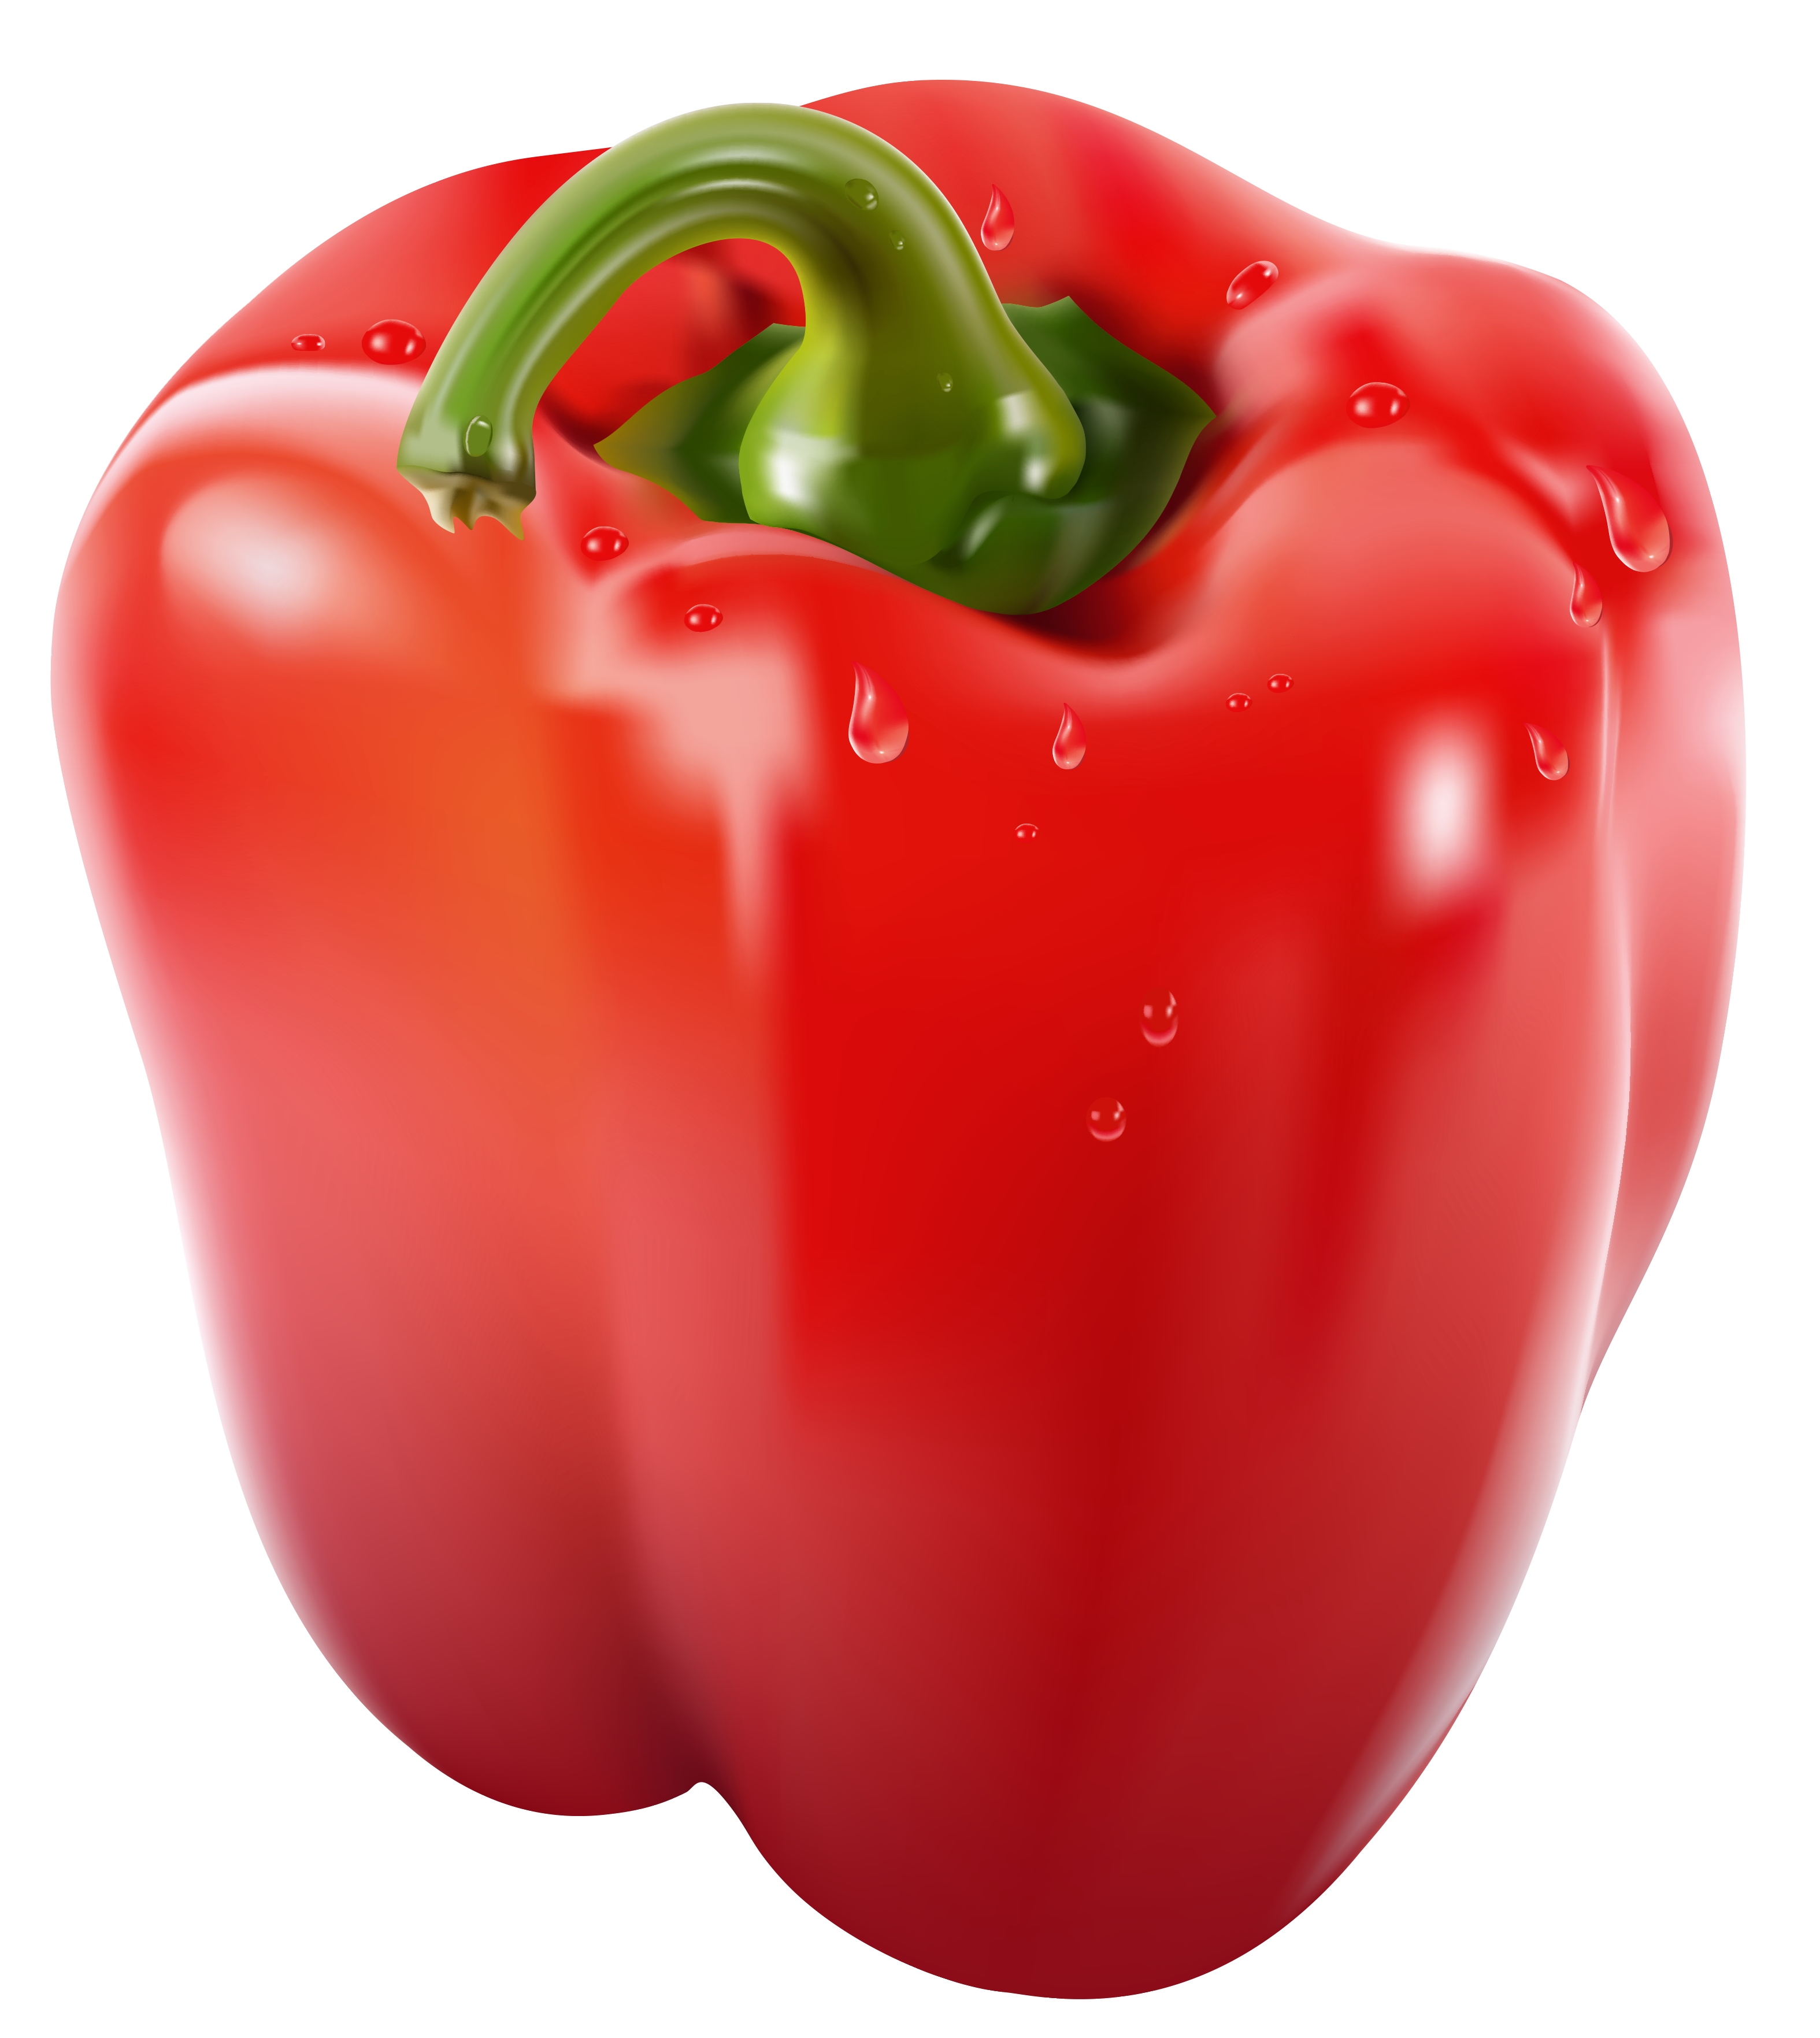 Bell peppers png. Transparent red pepper clipart